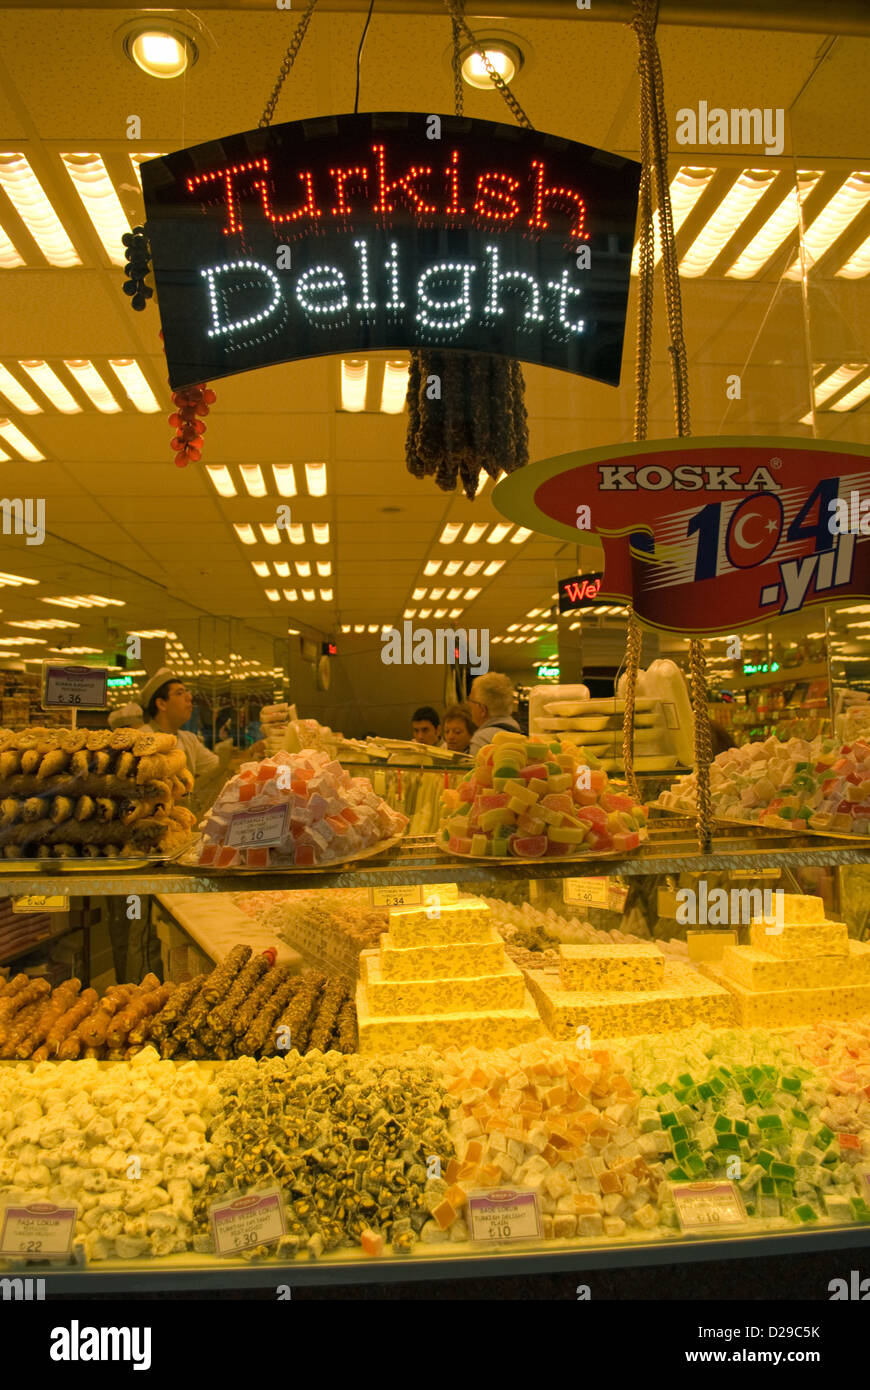 Sweets including Halva on display in Turkish sweet shop in Istanbul. - Stock Image